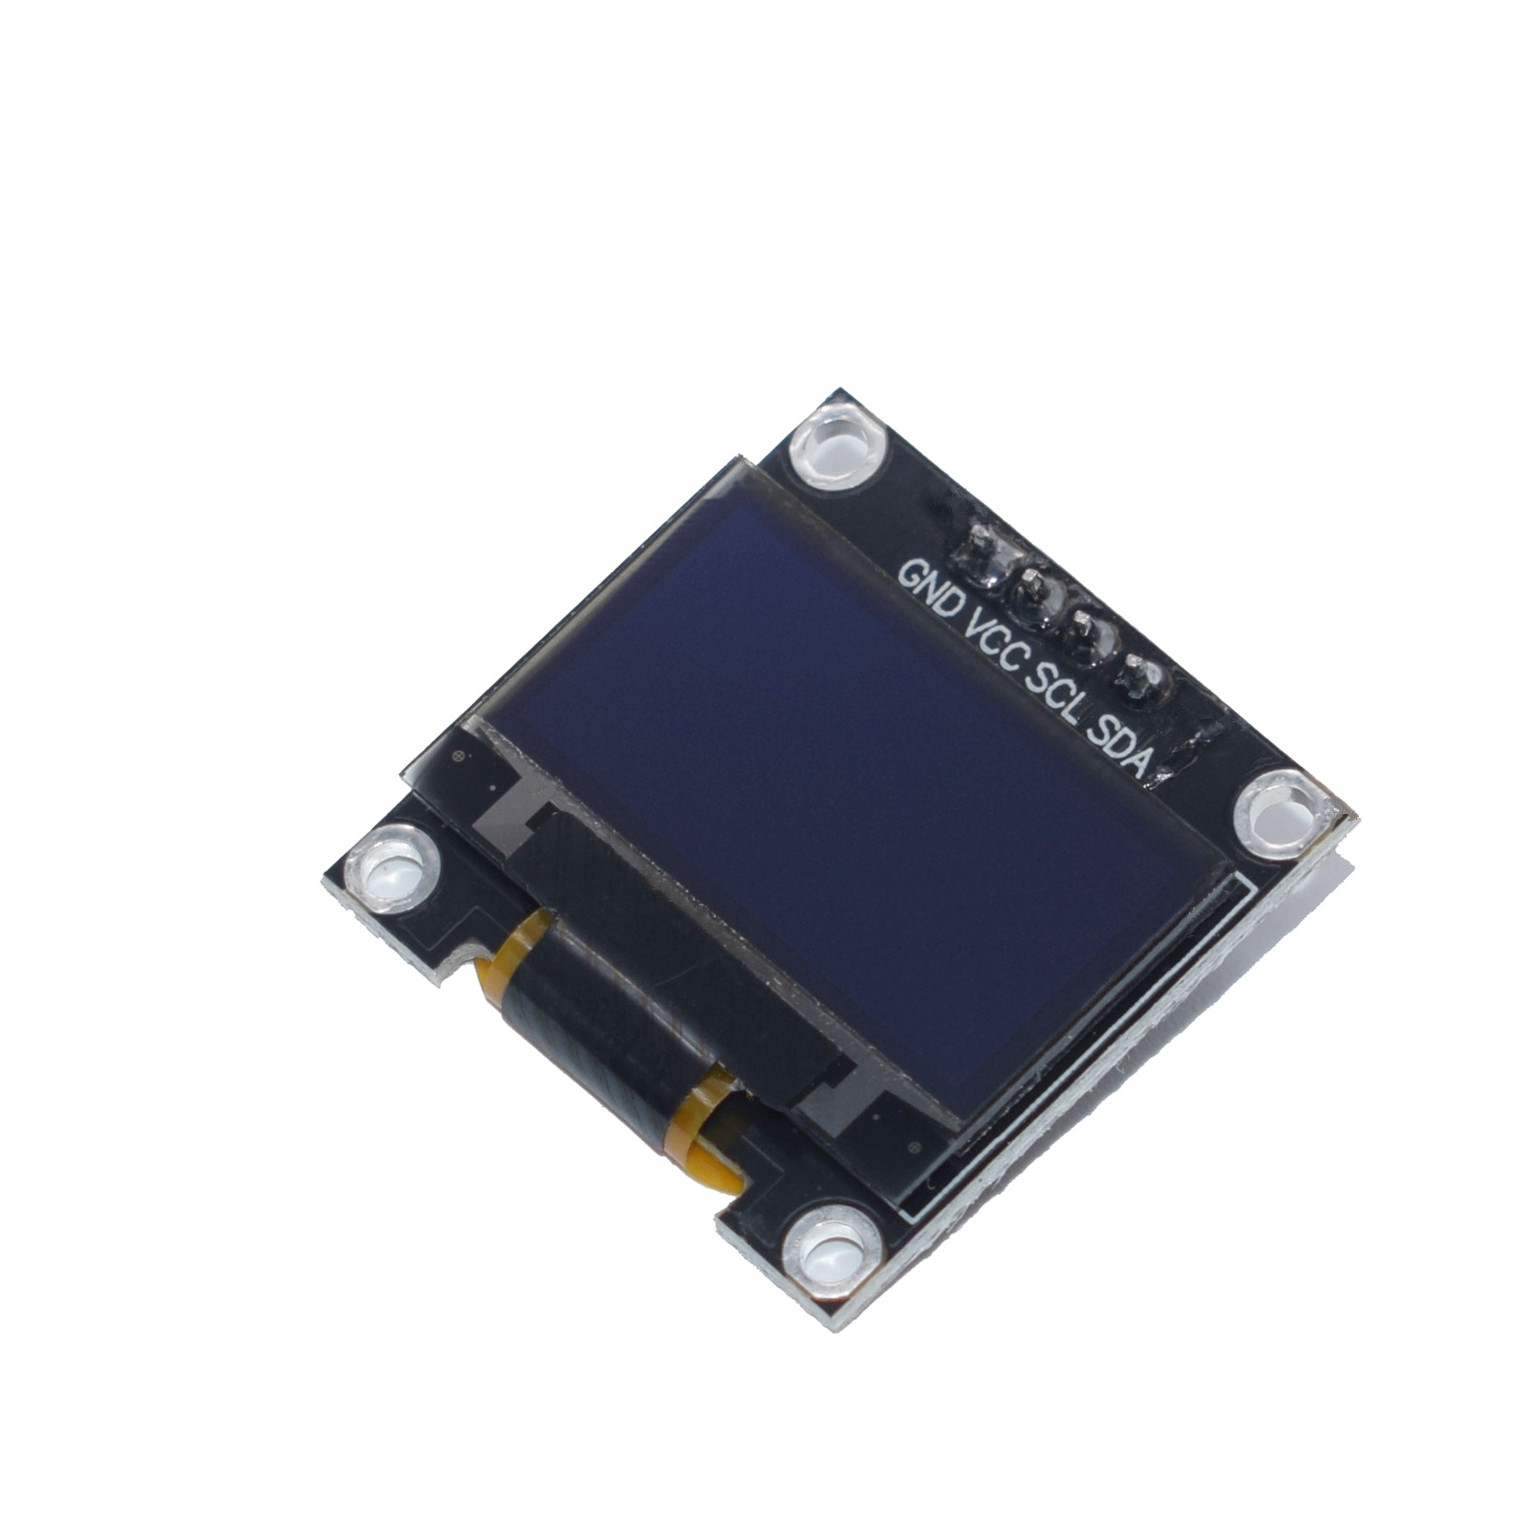 """Image 4 - 100 Pieces White/Yellow Blue/Blue 0.96 OLED 128X64 128*64 OLED LCD LED Display Module For 0.96"""" I2C IIC For Arduino Raspberry PiLCD Modules   -"""